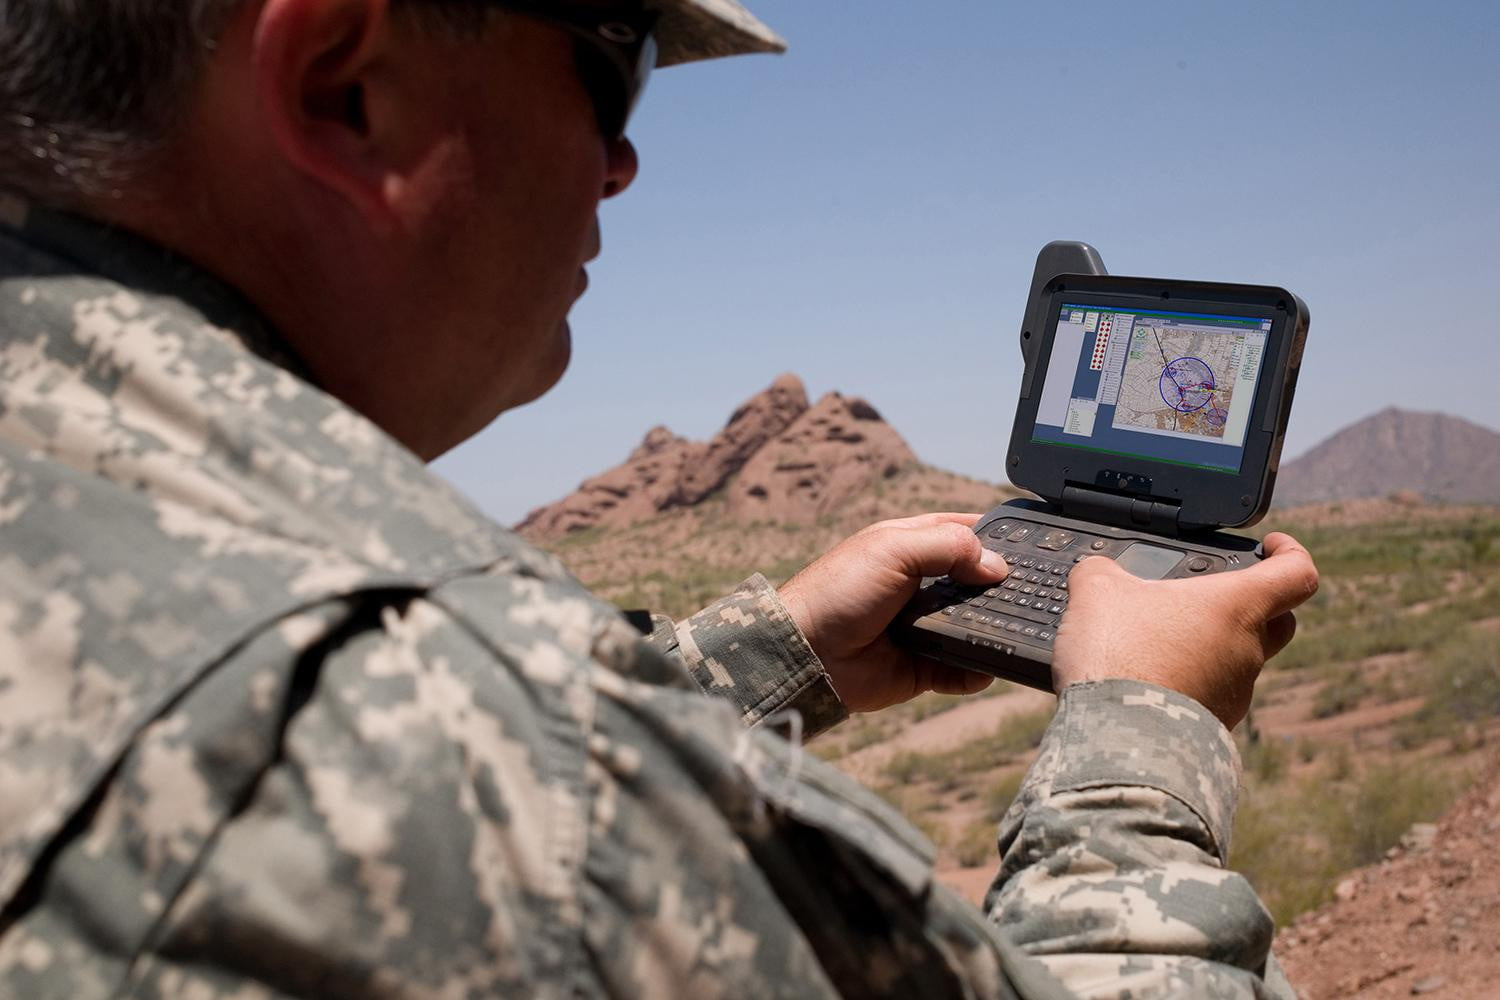 U.S. Military Barred From Using GPS Devices While On Missions